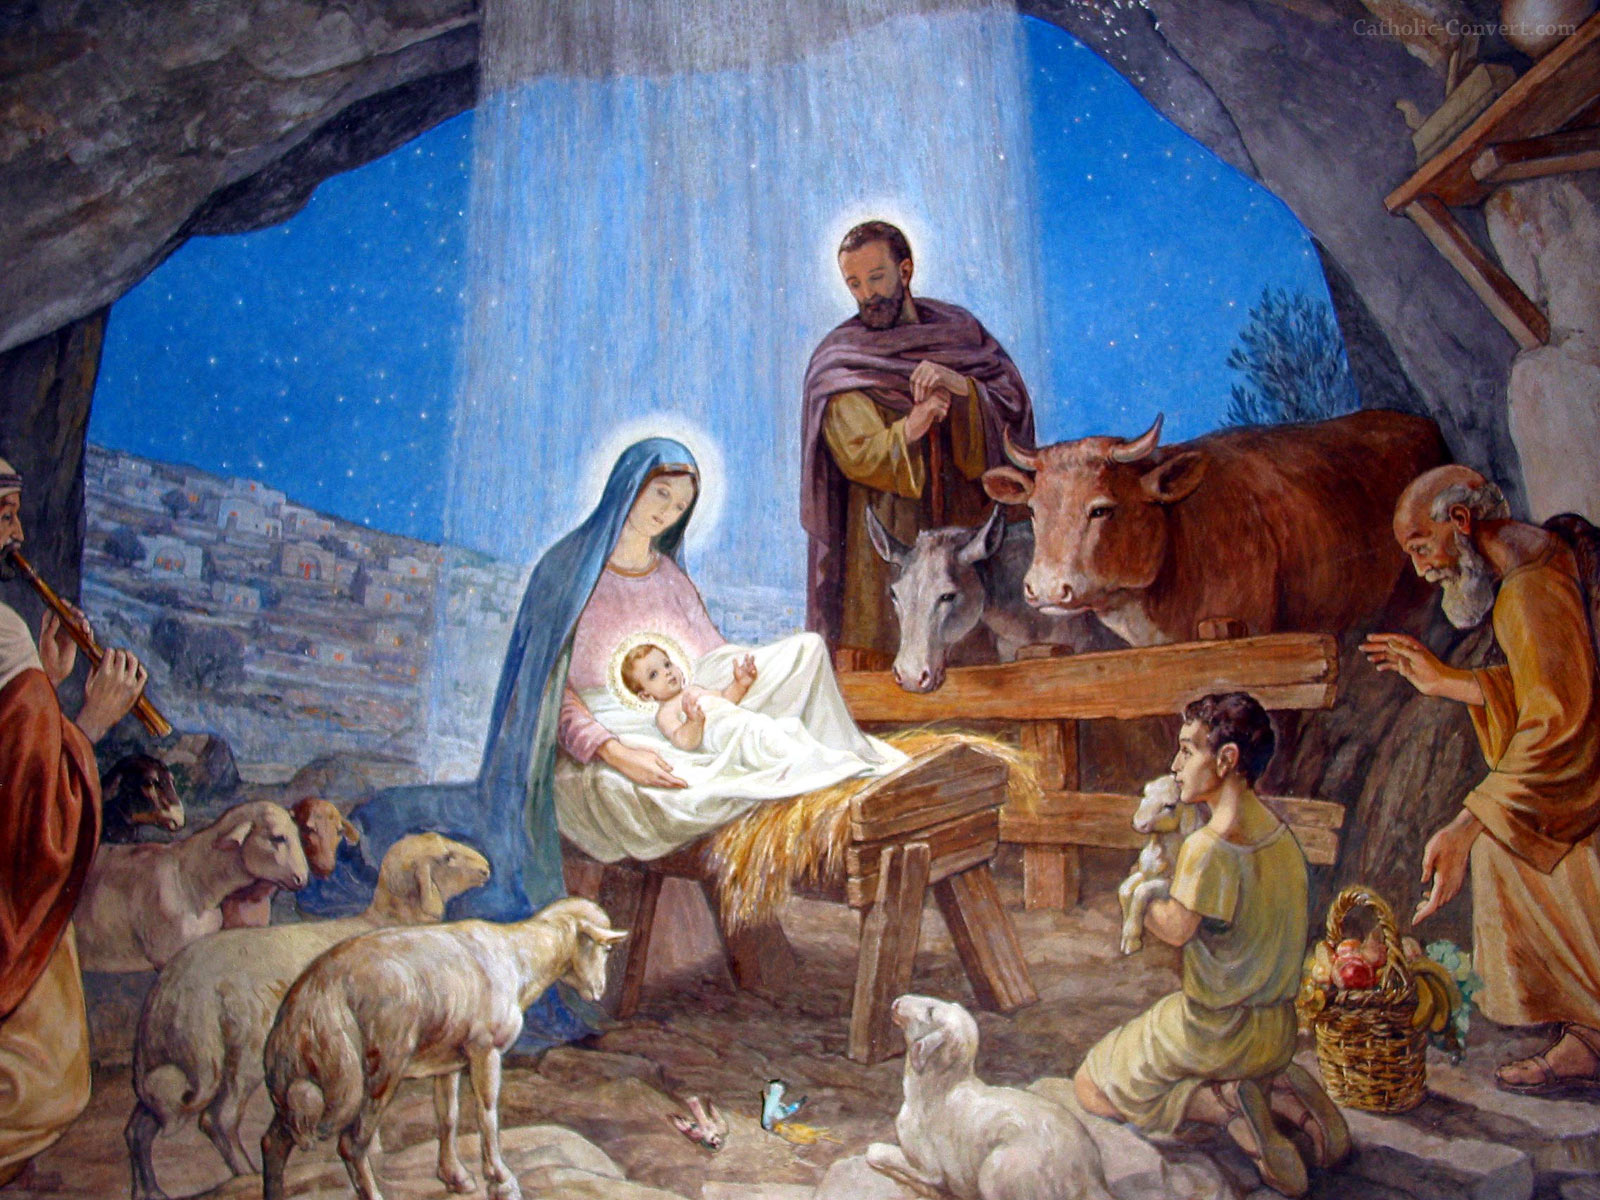 Nativity Scenes Wallpaper